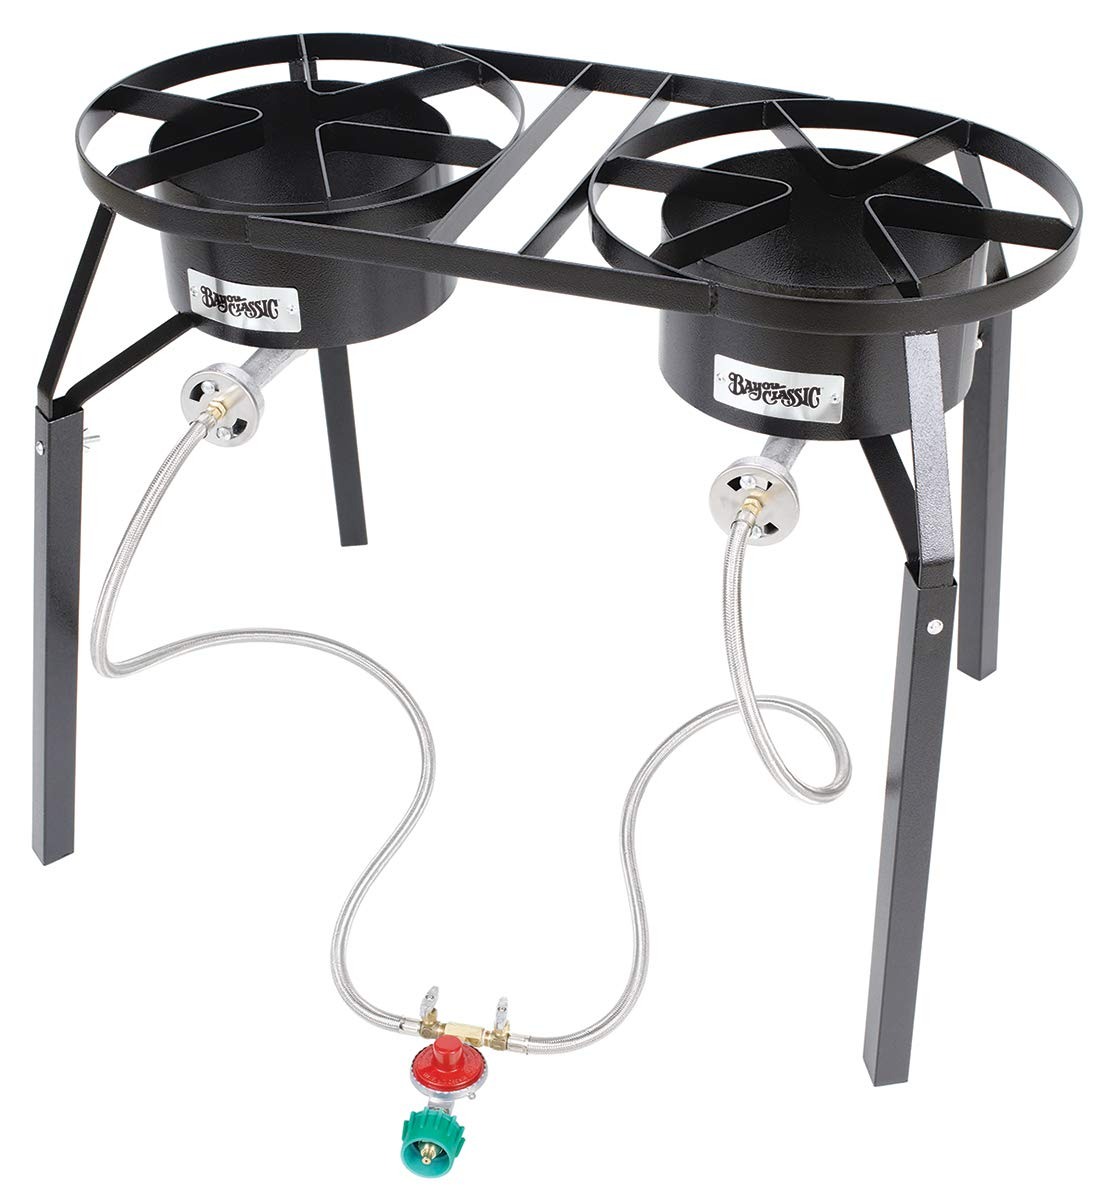 Bayou Classic DB250 Double Burner High-Pressure Cooker with Extension Legs by Bayou Classic